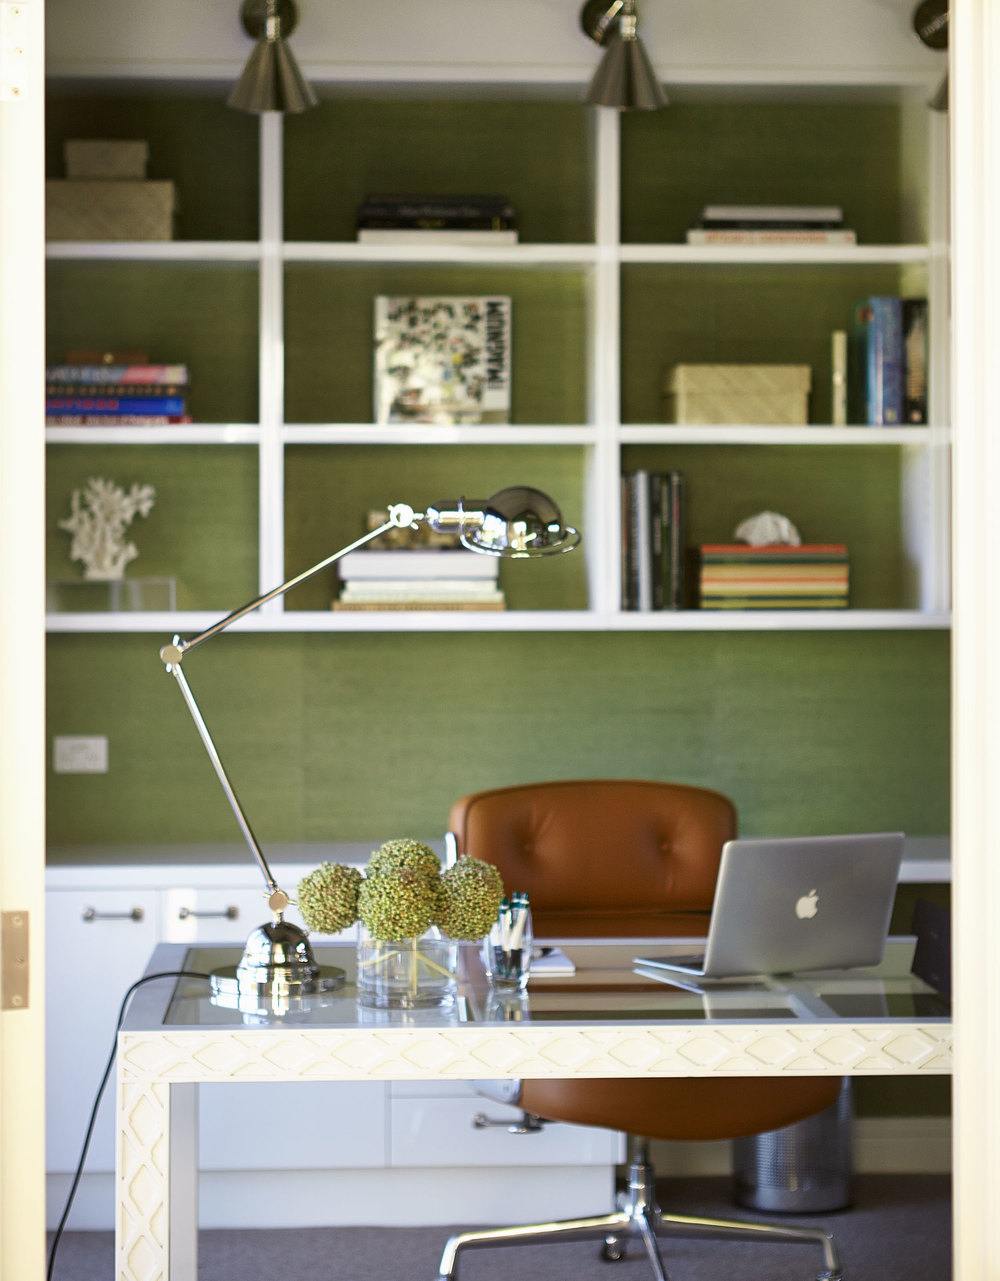 top-50-rooms-green-grasscloth-wallpaper-home-office-one-off-white-lacquer-glass-desk-nickel-wall-light-custom-joinery-tan-leather-eames-chair-nickel-adjustable-table-lamp-white-walls-diane-bergeron.jpg